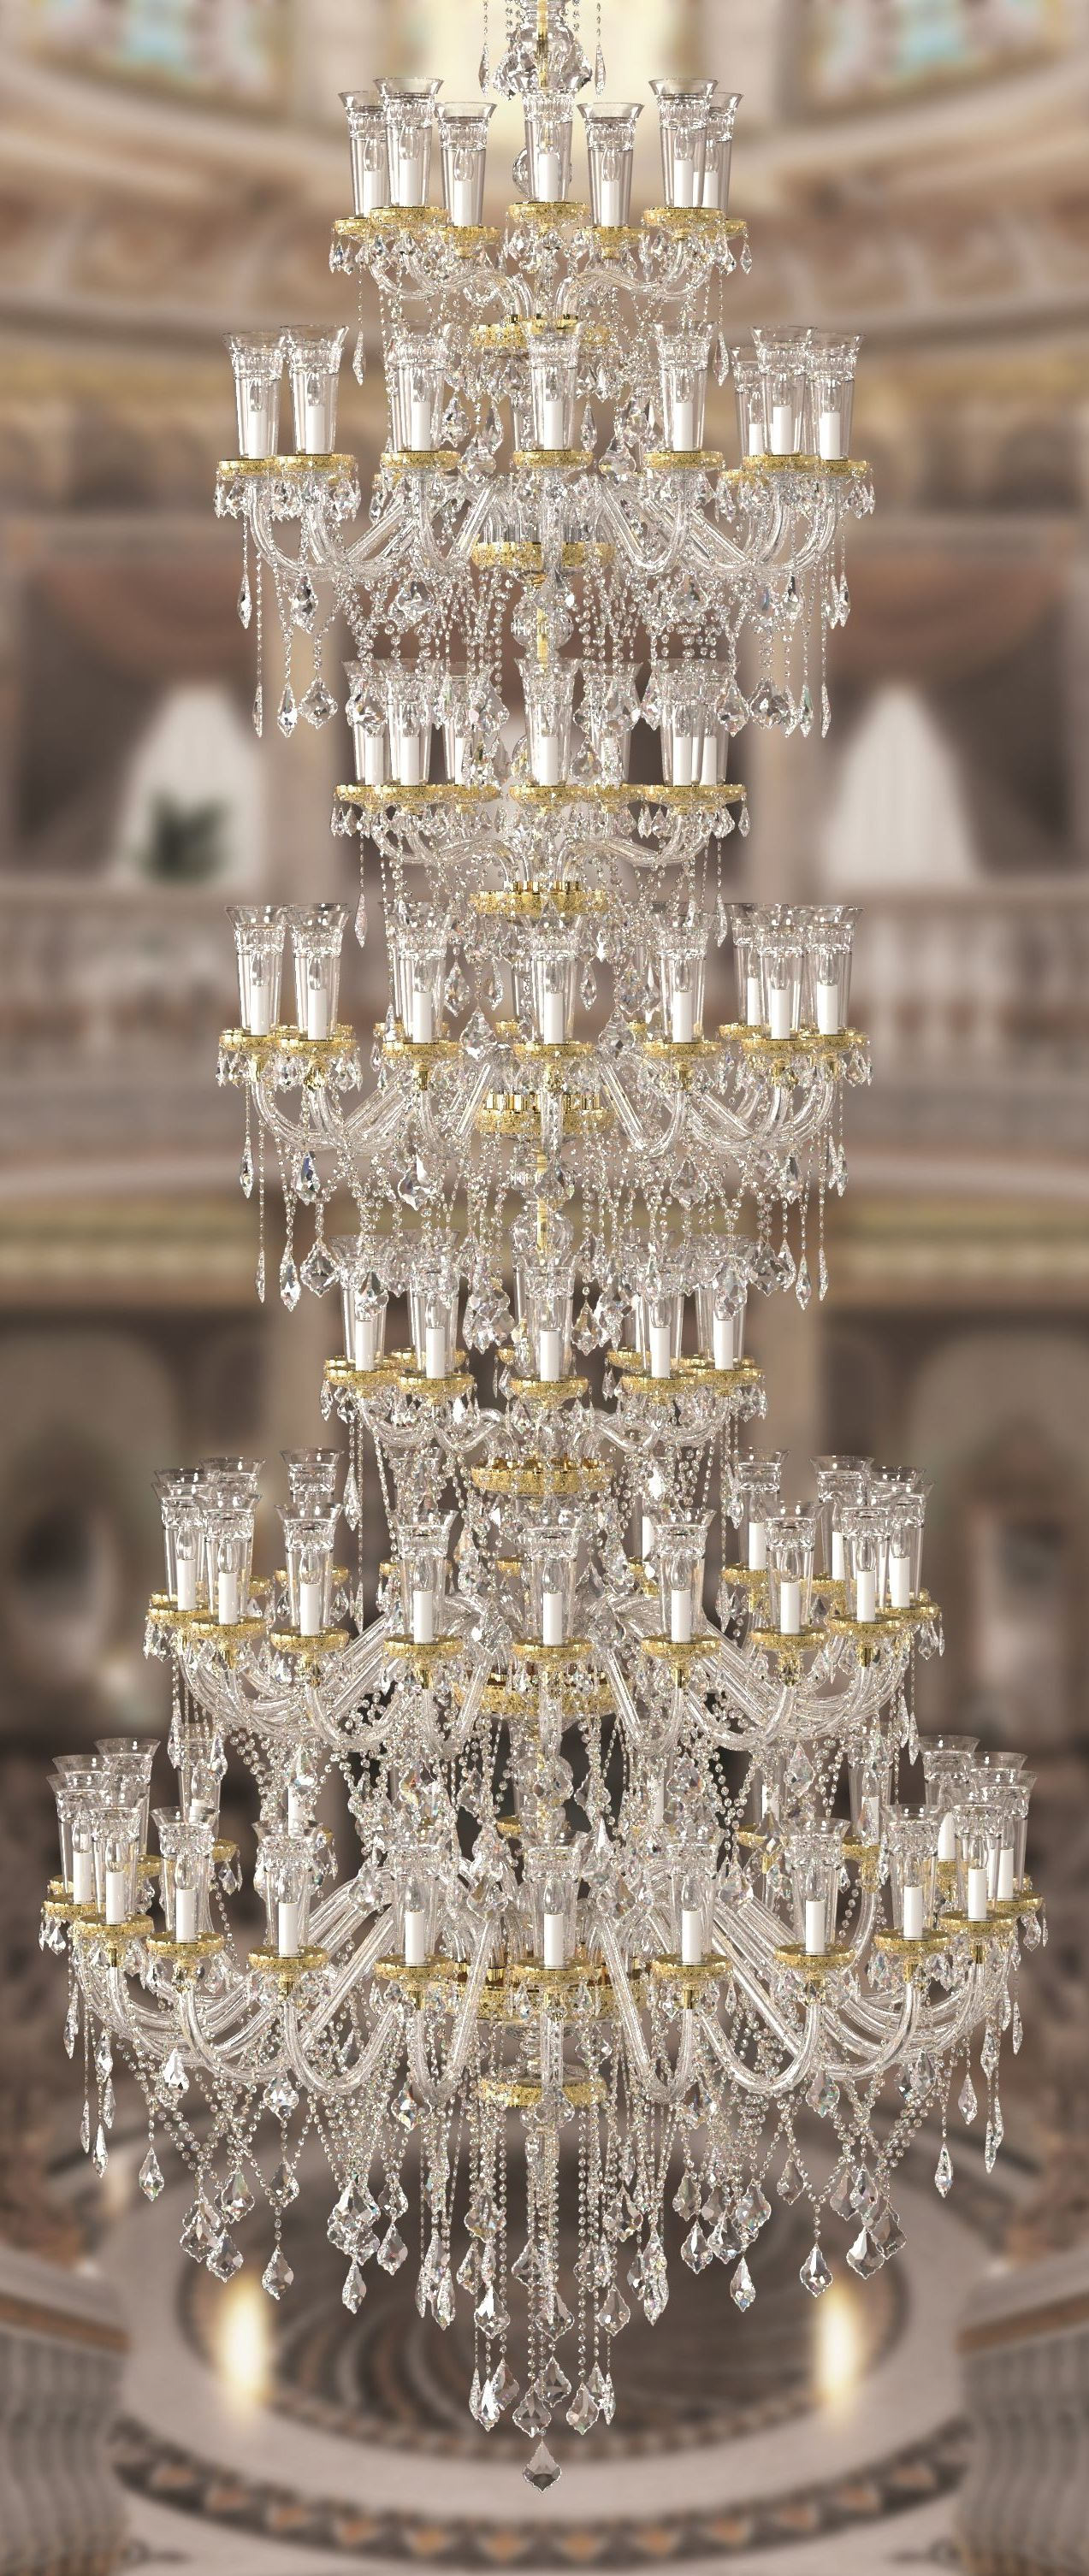 Big dinastia chandelier by aysan dia 170 x h 450 cm designed for explore aysans most recent aurora collection luxurious chandeliers wall lights and table lamps designed specifically for projects of palaces arubaitofo Image collections